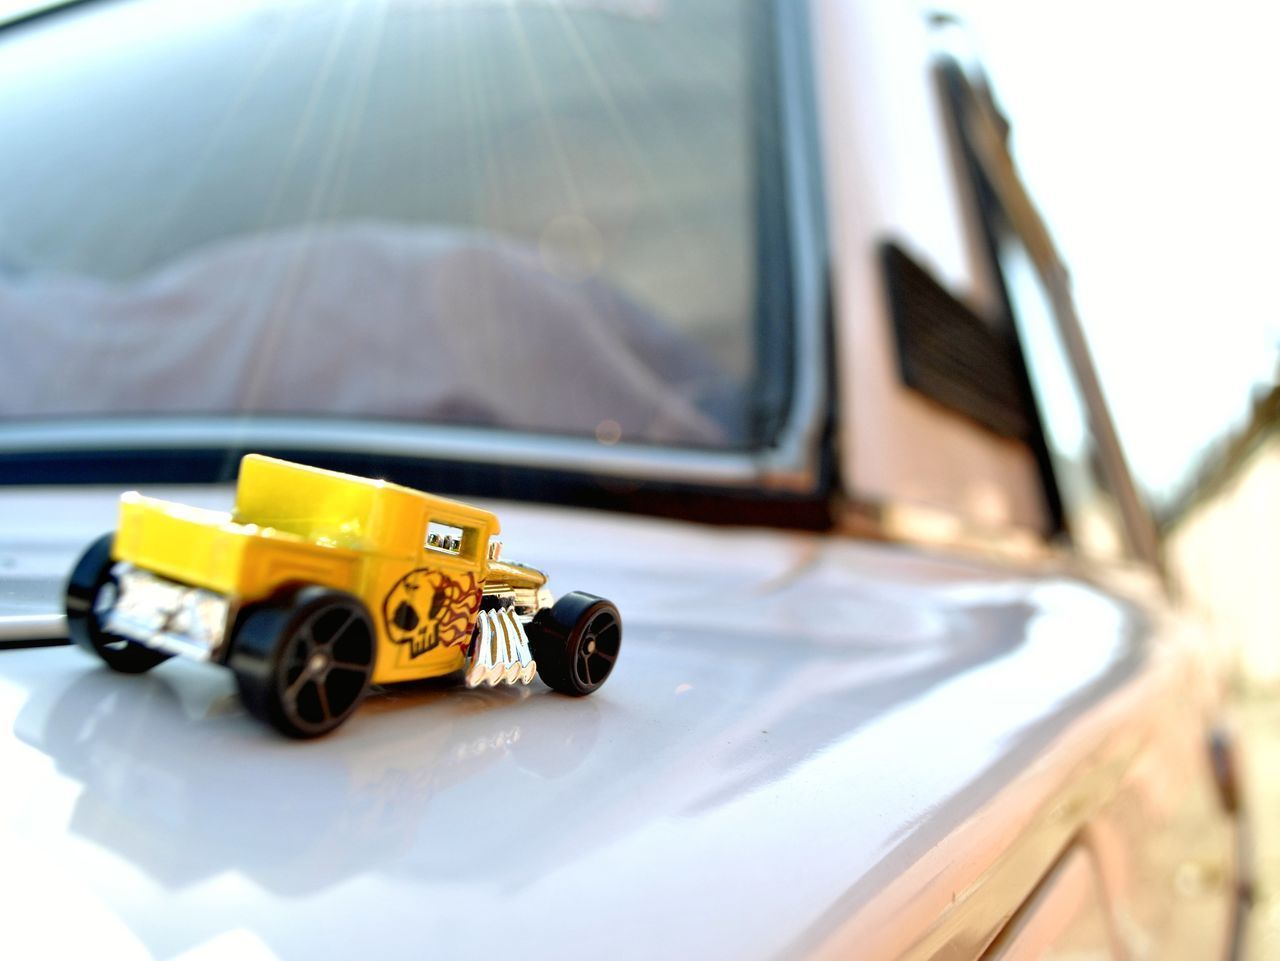 CLOSE-UP OF YELLOW TOY CAR ON BUS MIRROR